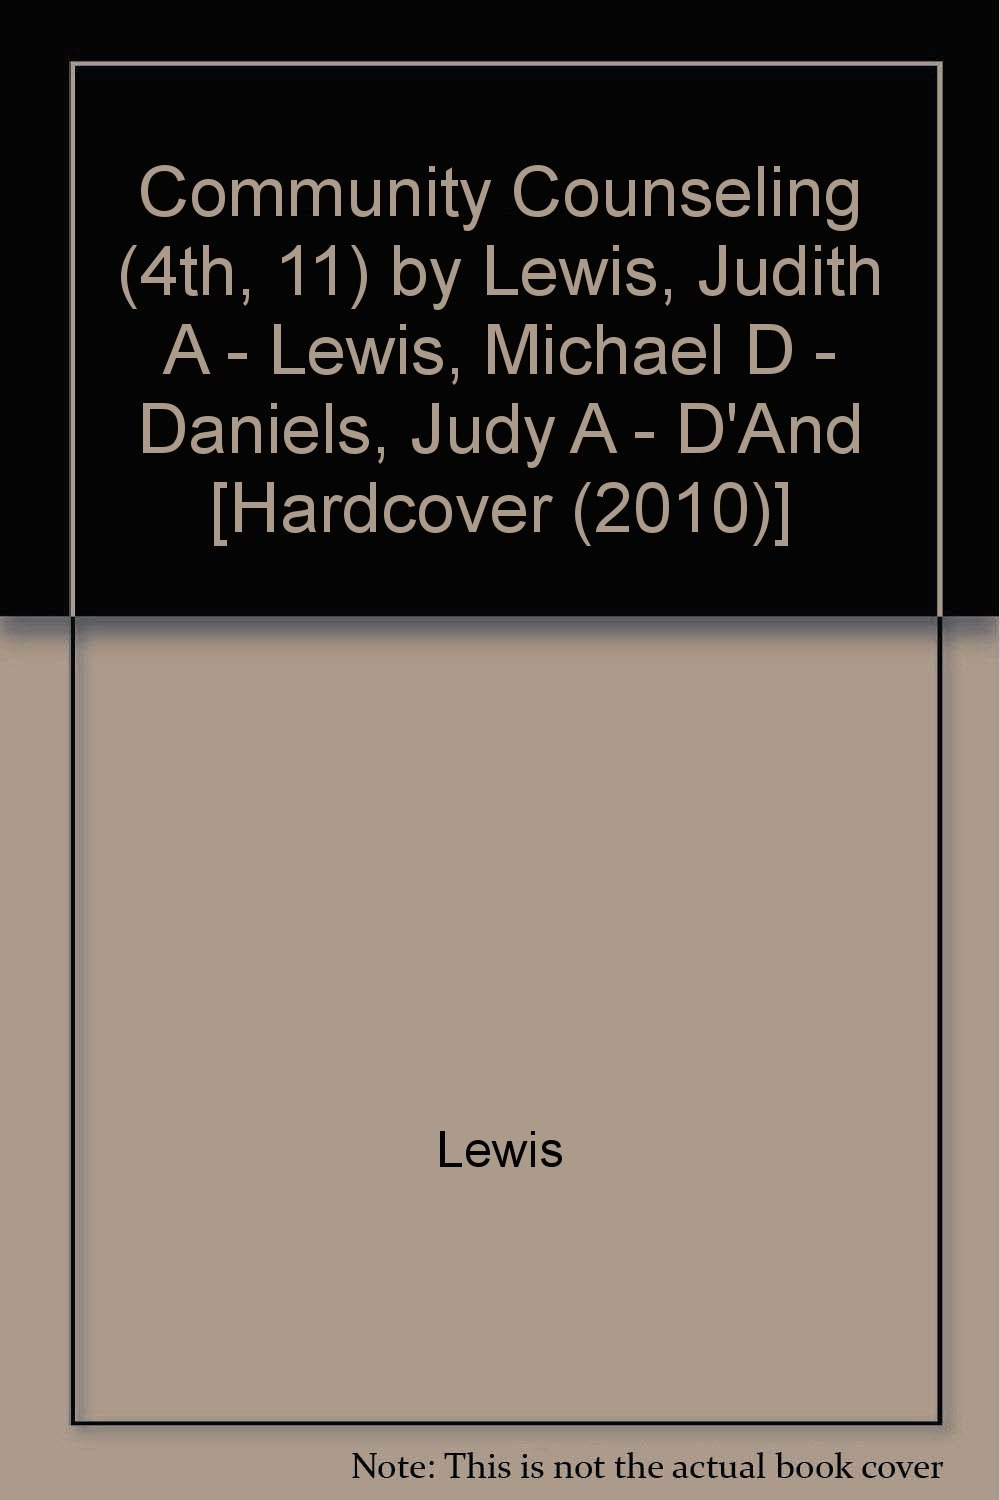 Community Counseling (4th, 11) by Lewis, Judith A - Lewis, Michael D - Daniels, Judy A - D'And [Hardcover (2010)] pdf epub